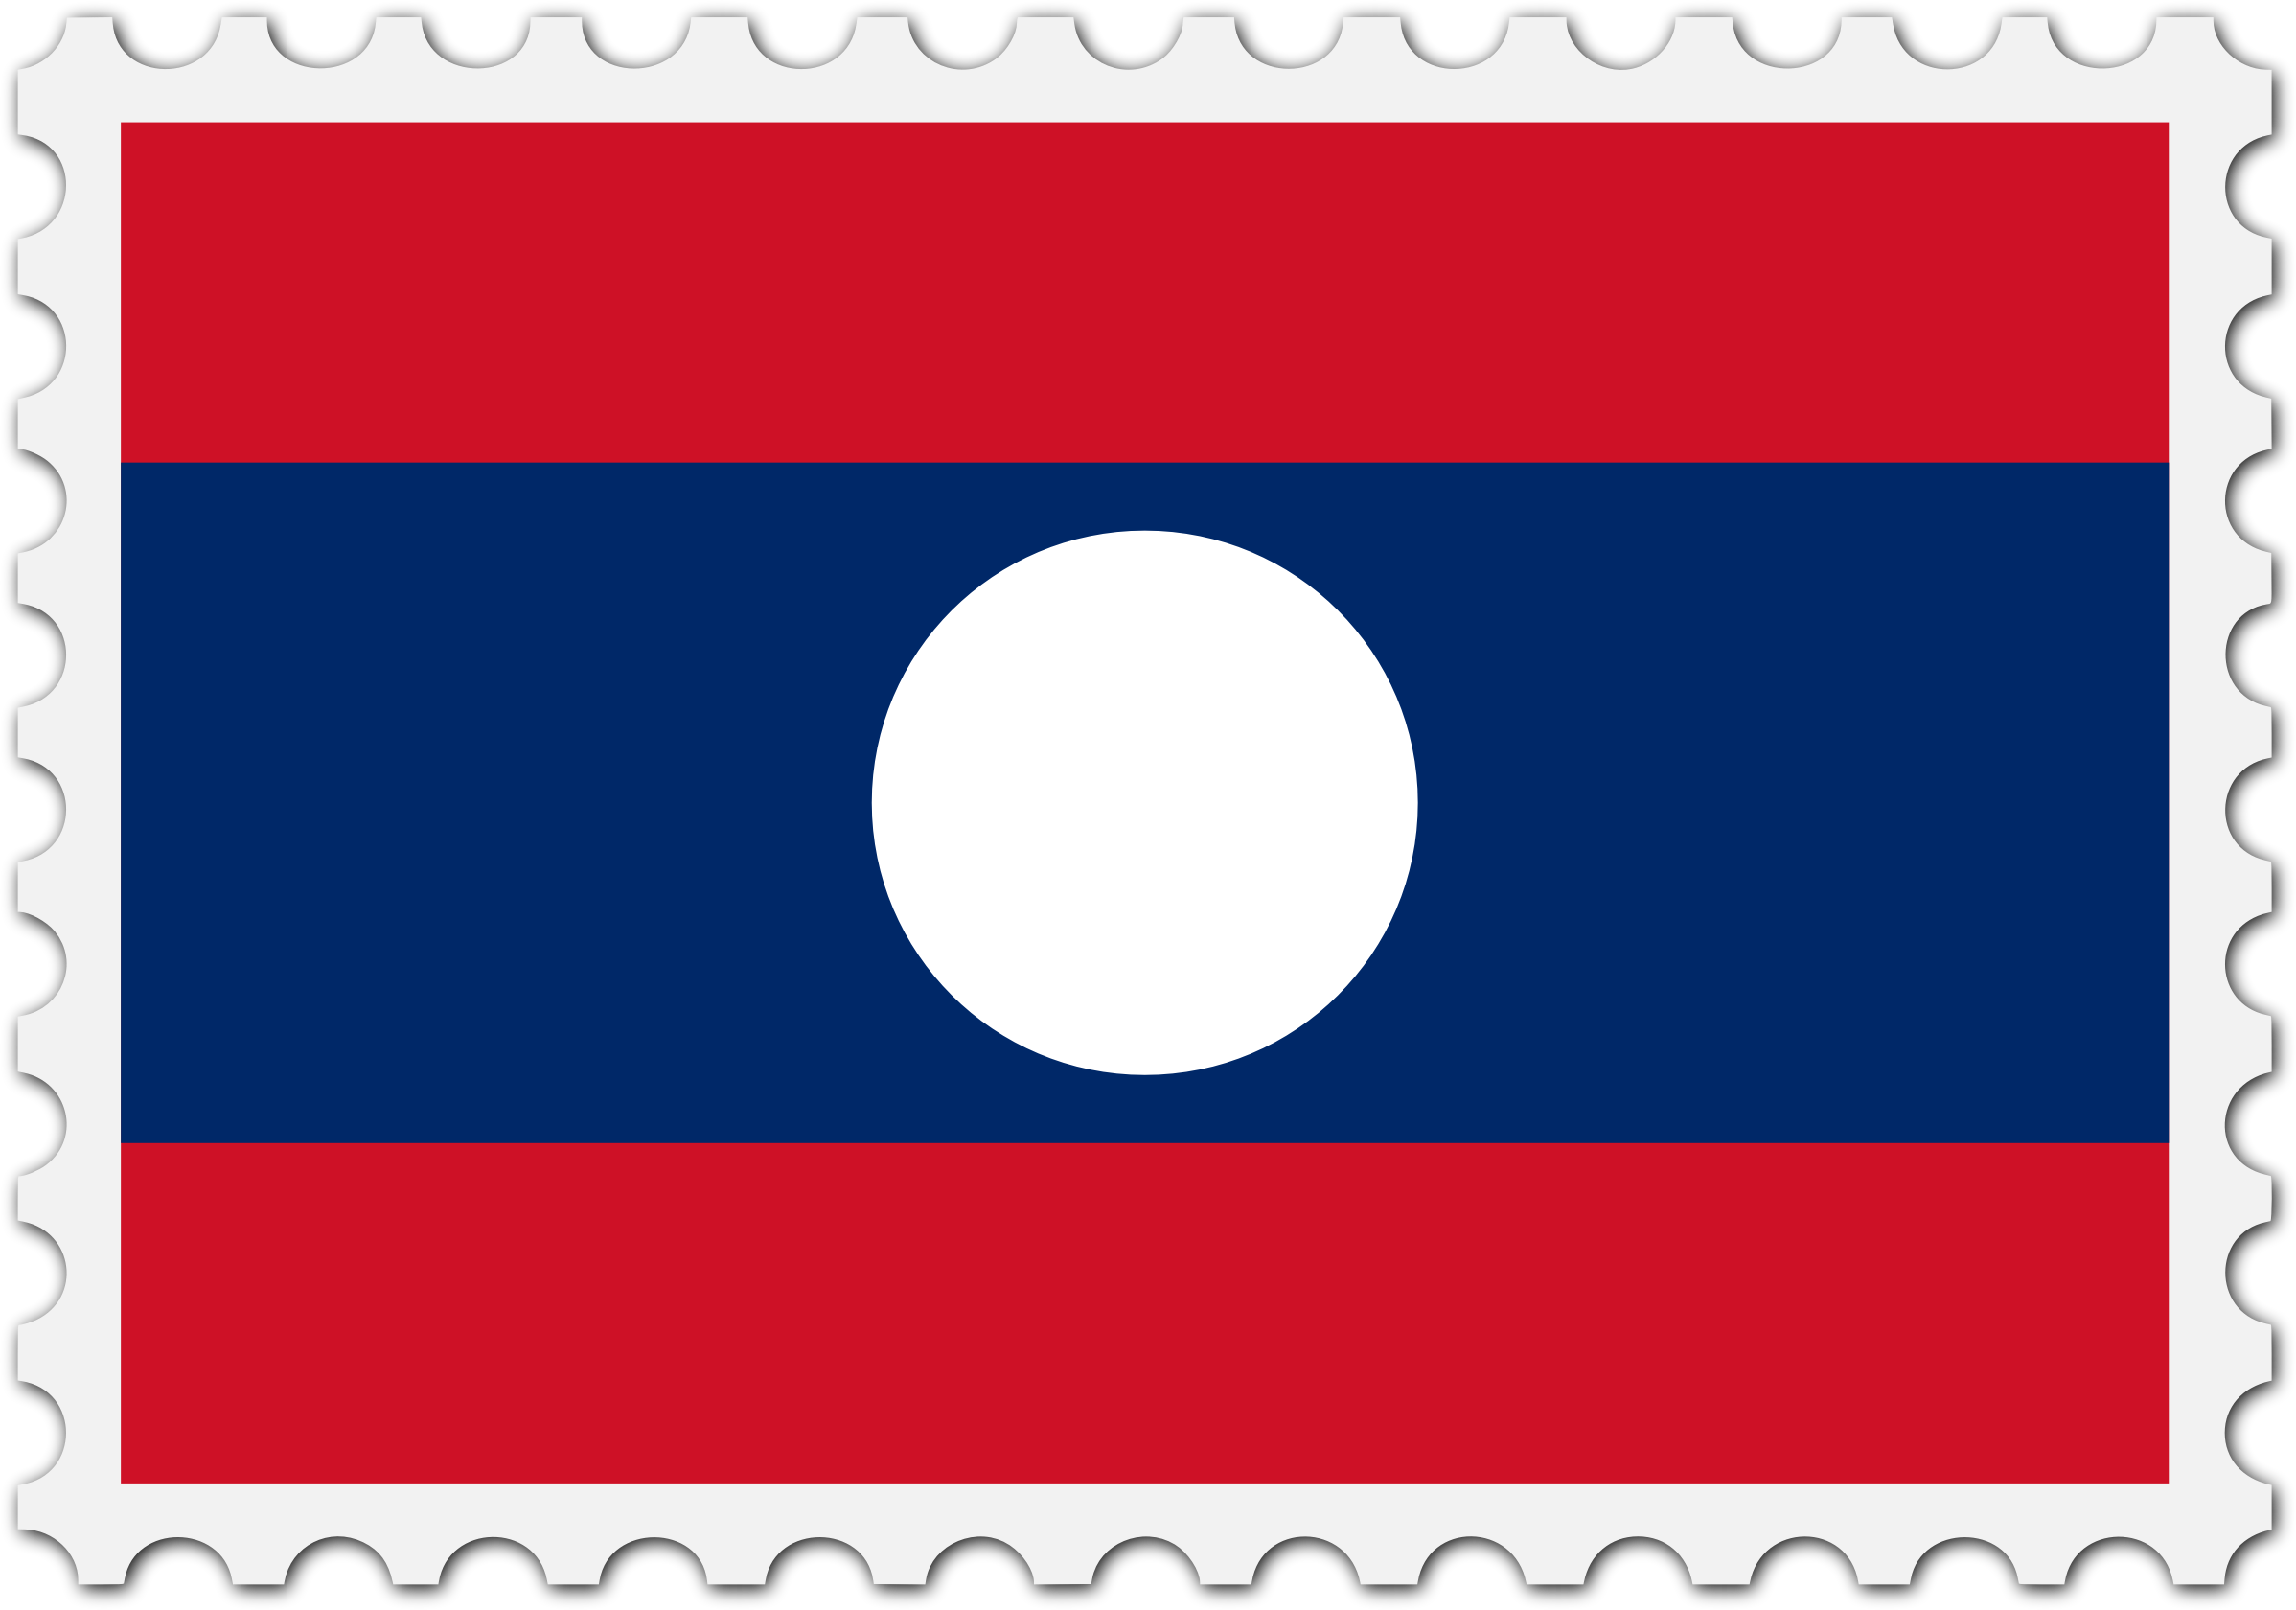 Laos flag stamp by Firkin